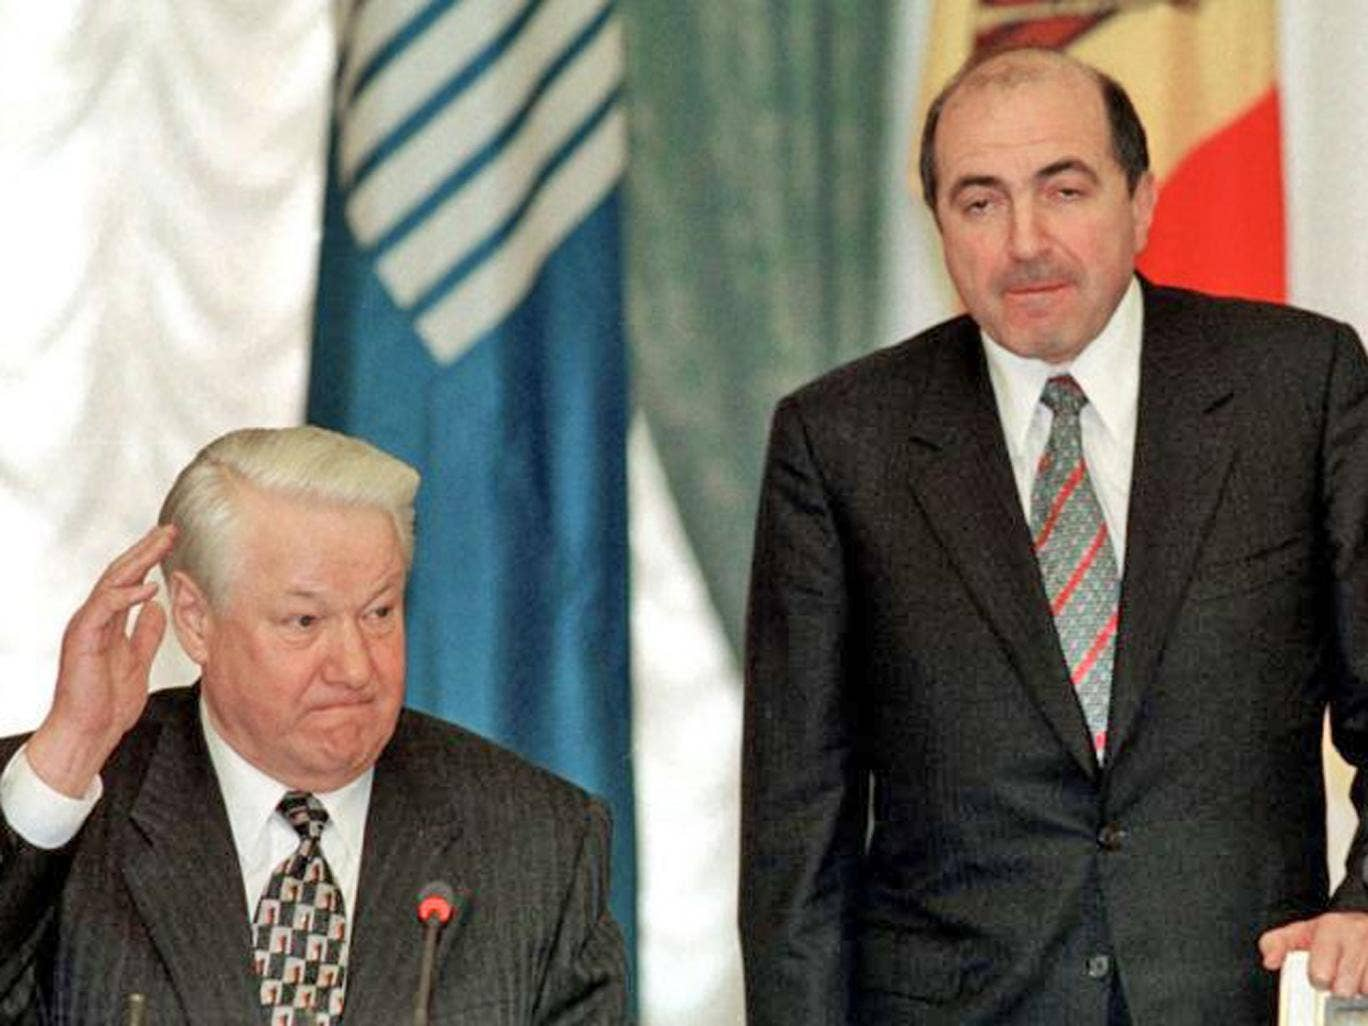 Boris Berezovsky rose to prominence as a key ally of former Russian President Boris Yeltsin, pictured together here in 1998